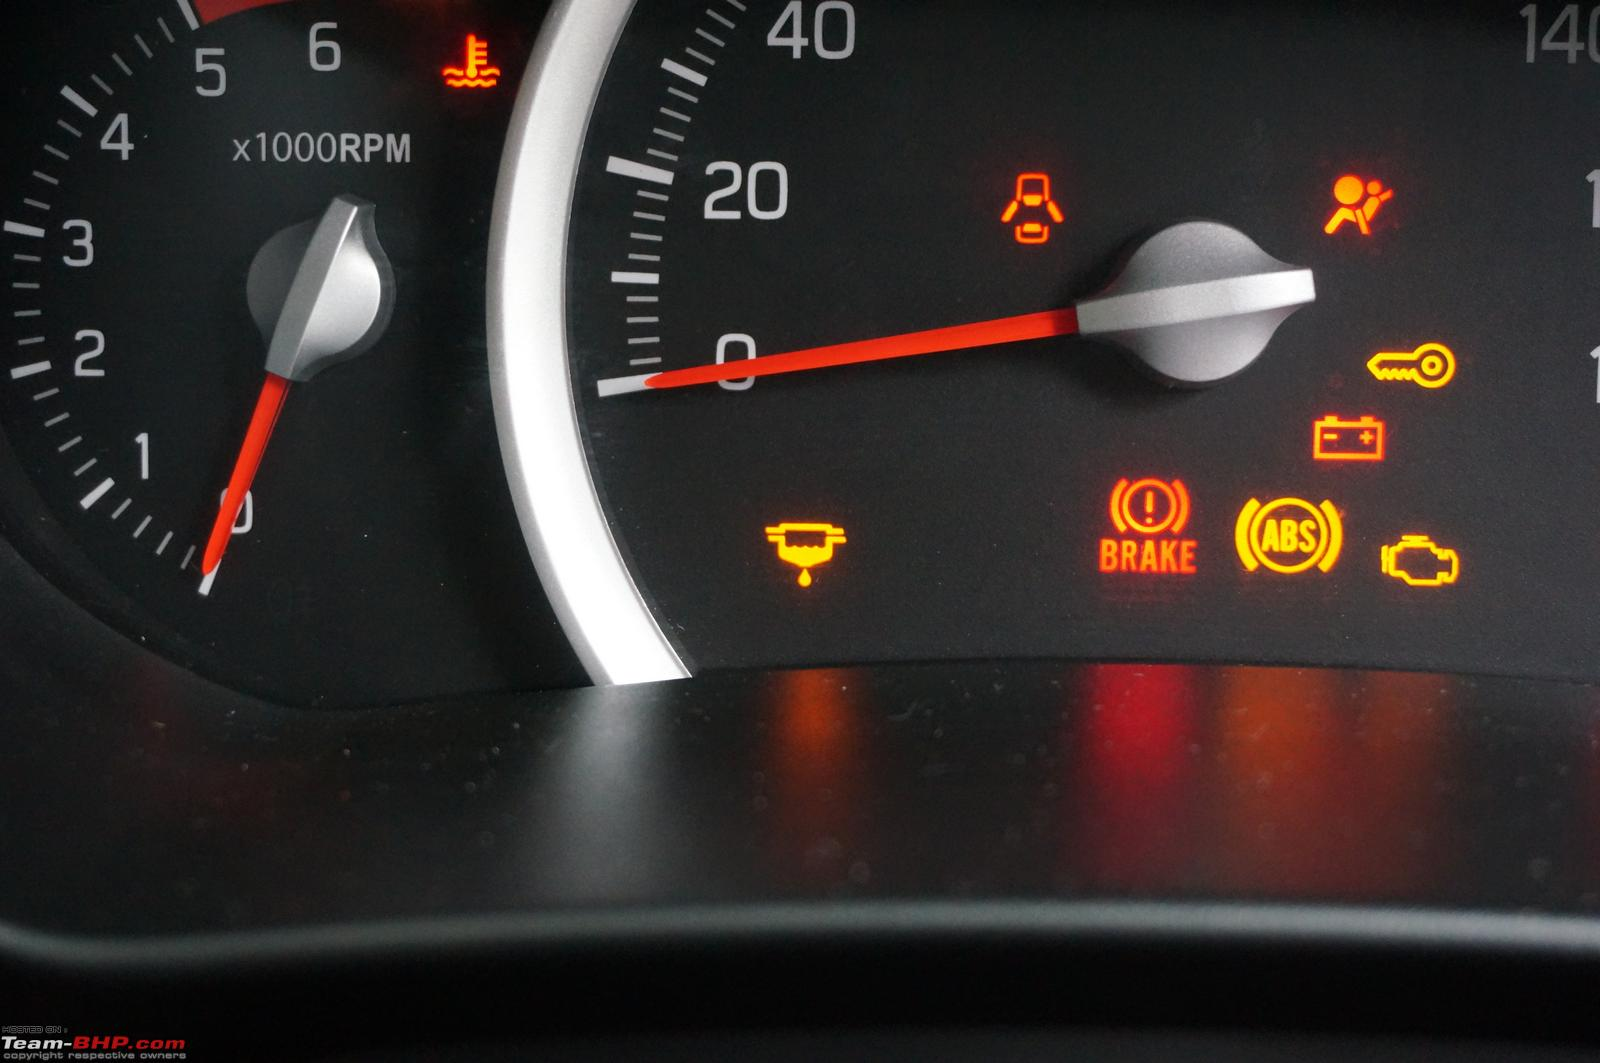 Maruti Celerio Diesel Official Review Team Bhp Opel Corsa Ignition Wiring Diagram That Yellow Sign Image Center Warns You If There Is Water In The Filter